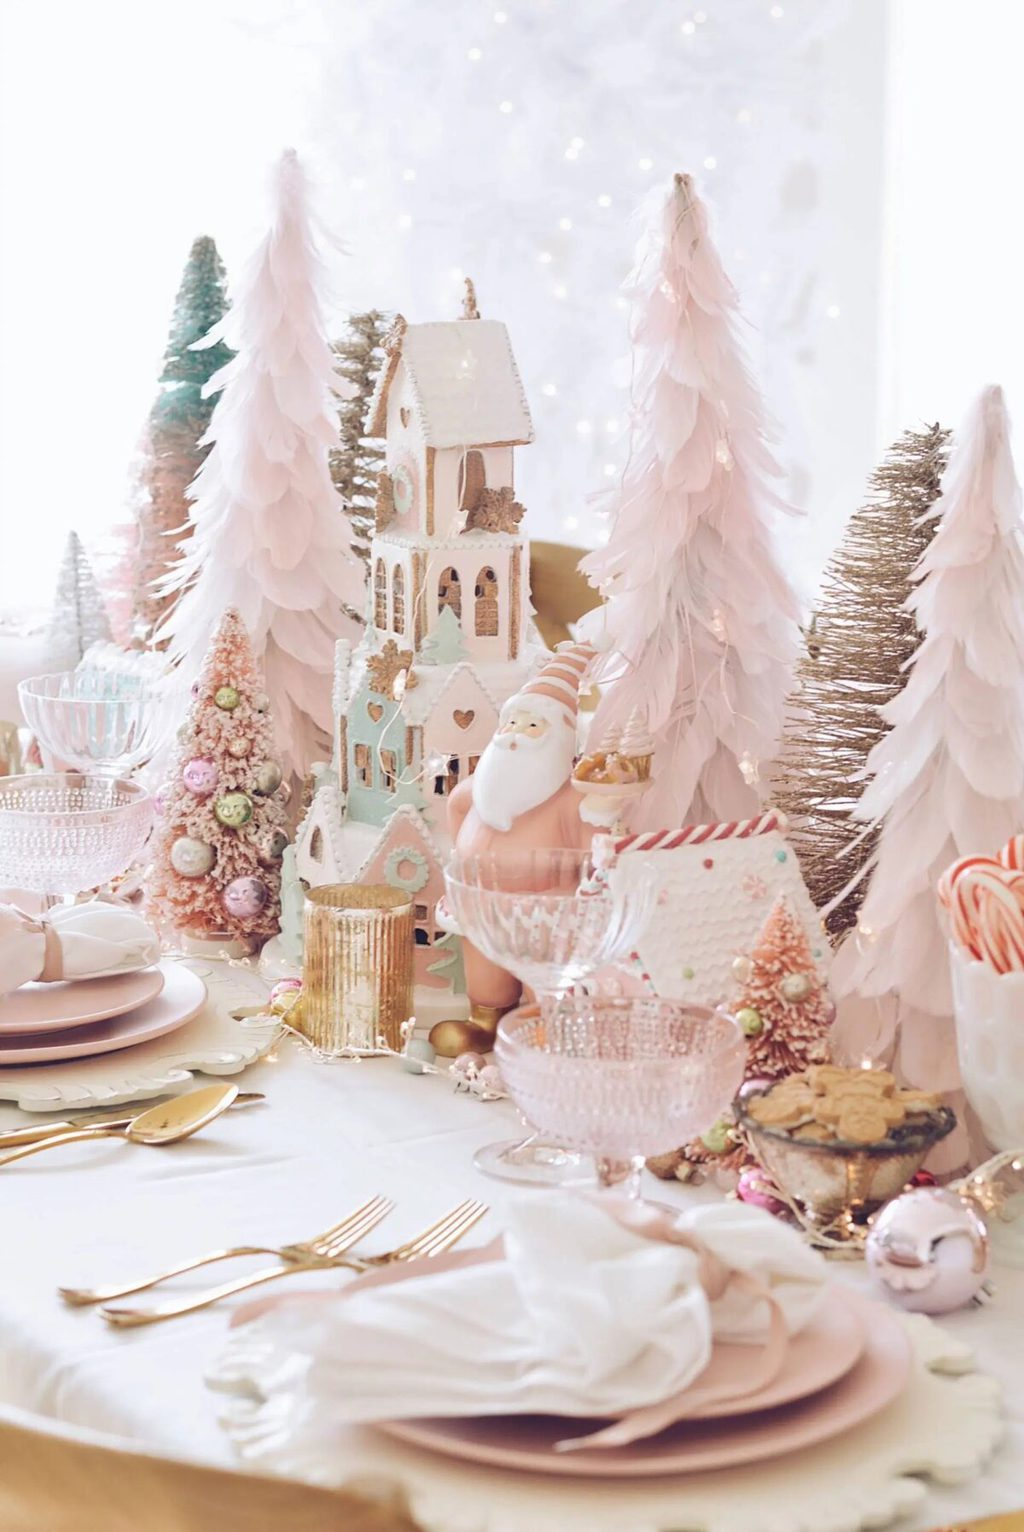 5 Festive Styles To Inspire Your Christmas Centerpiece For The Table